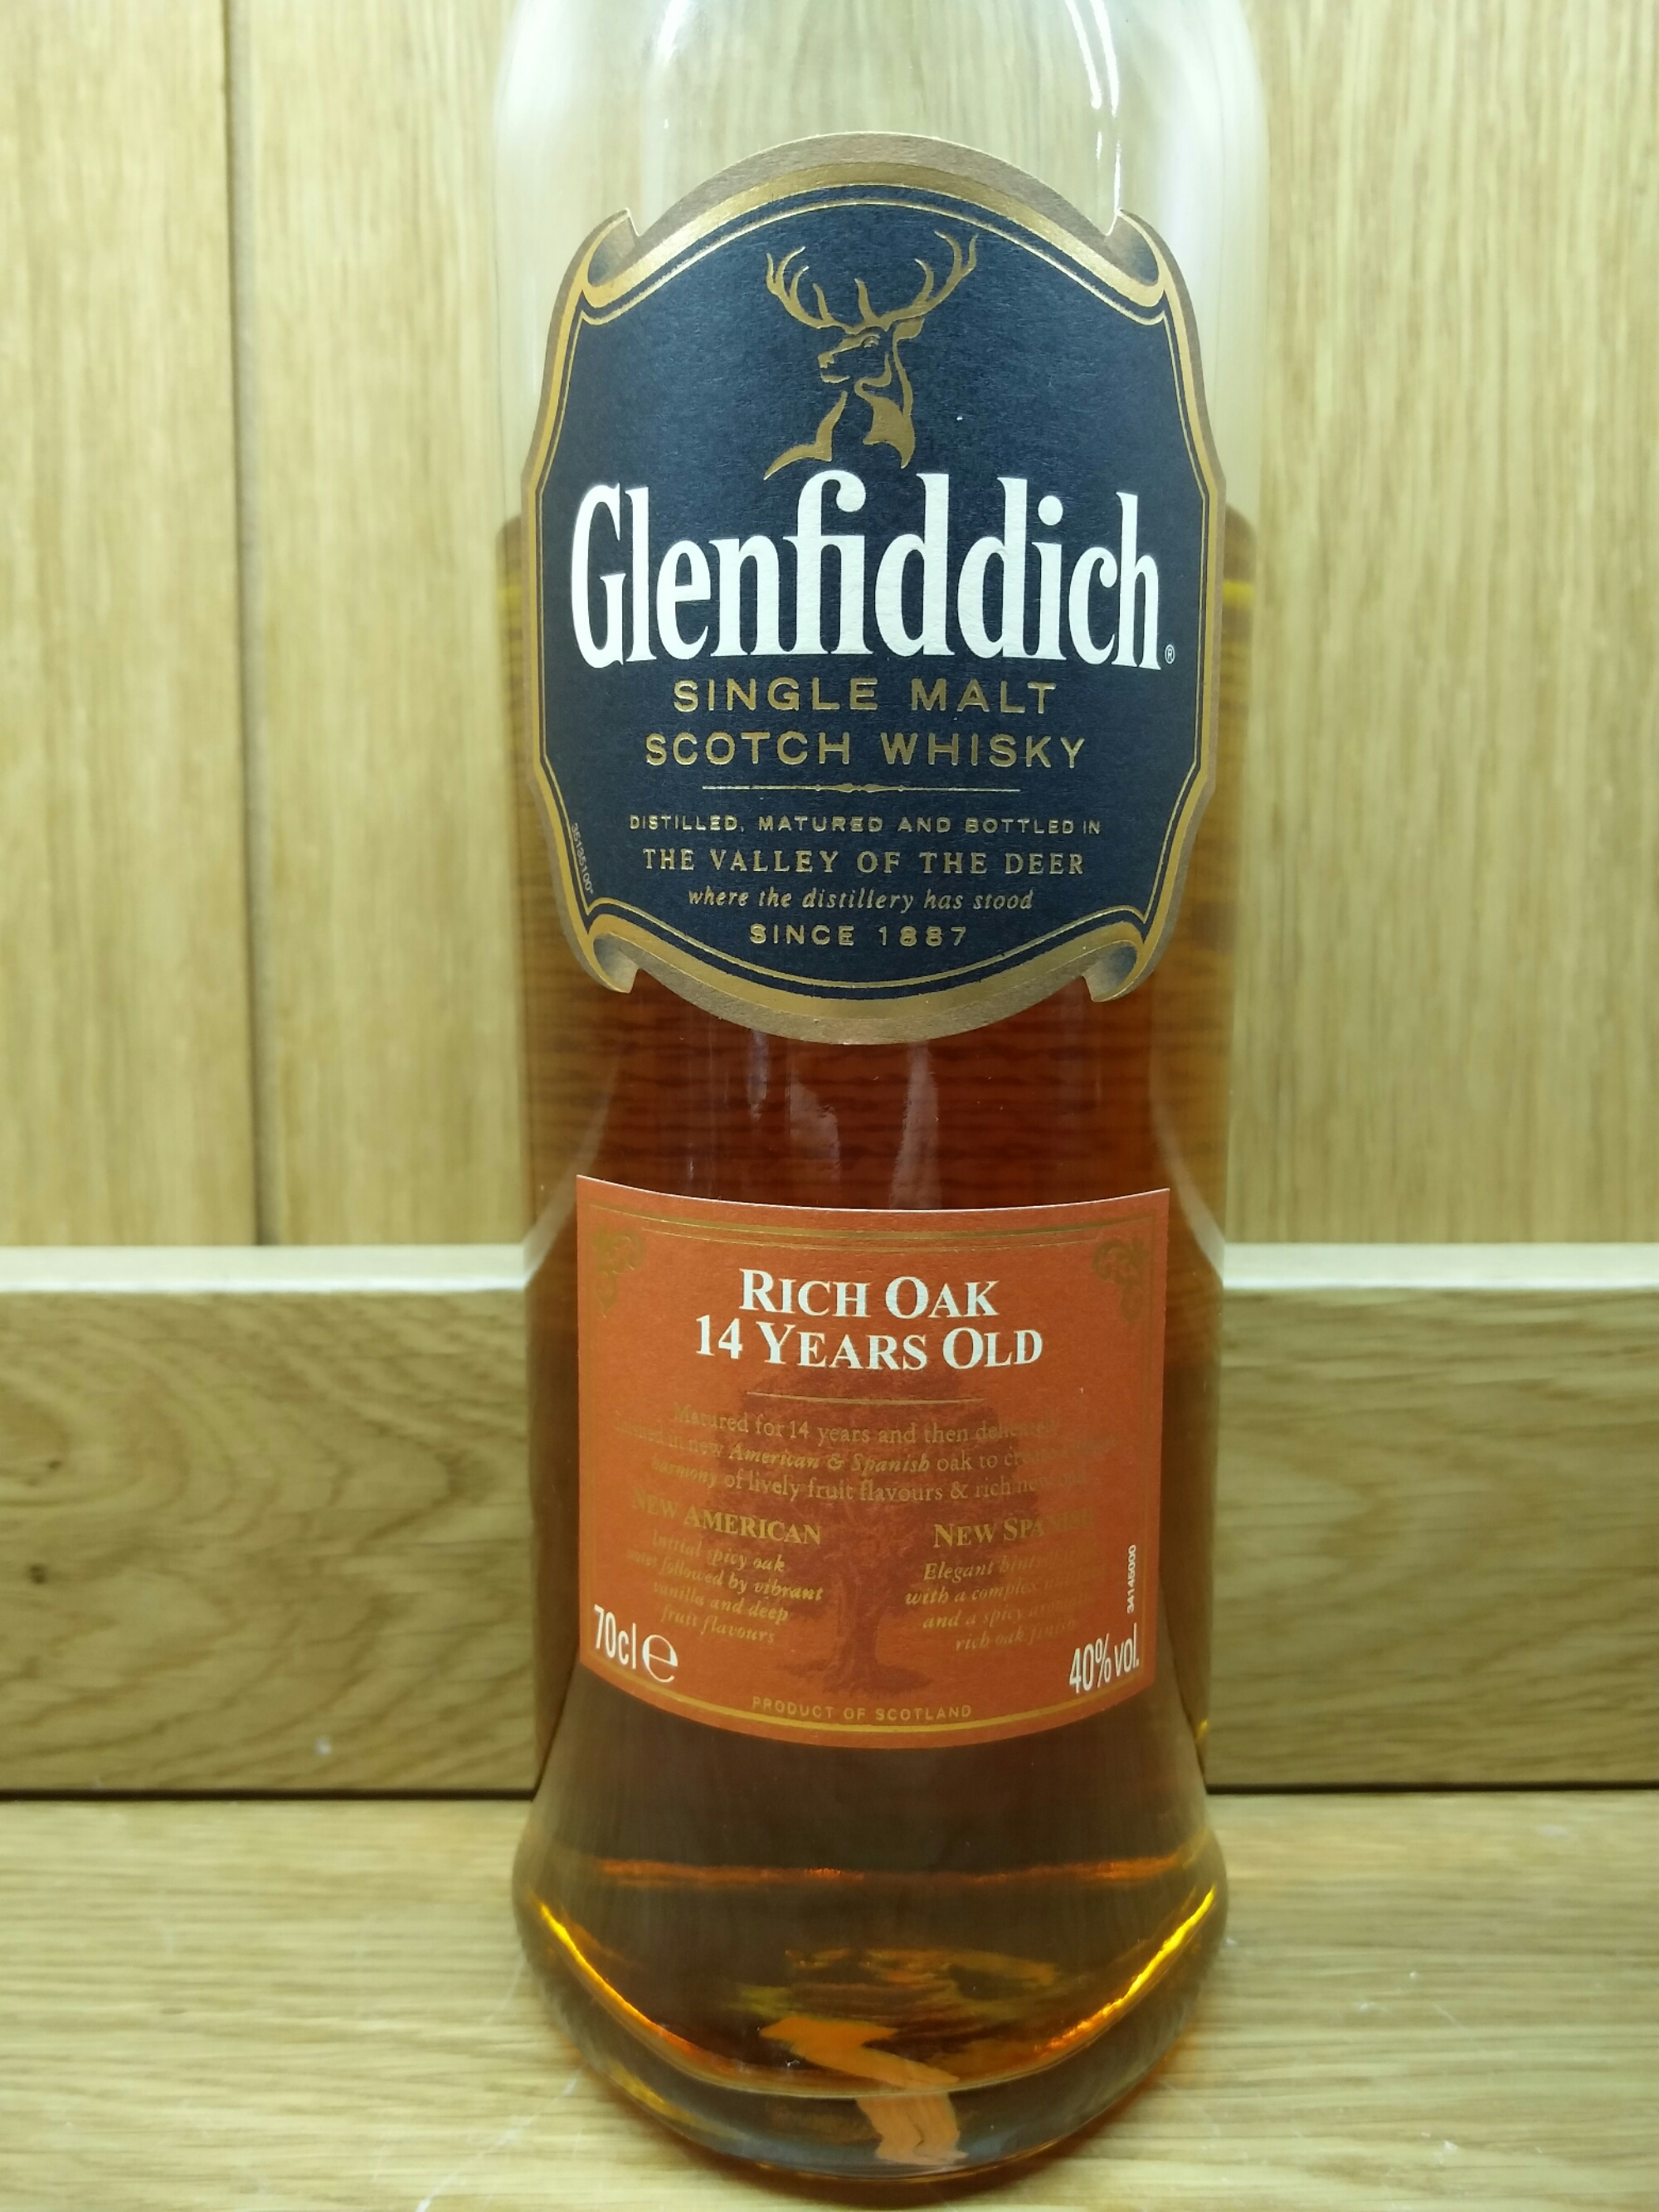 Glenfiddich 14 Year Old Rich Oak